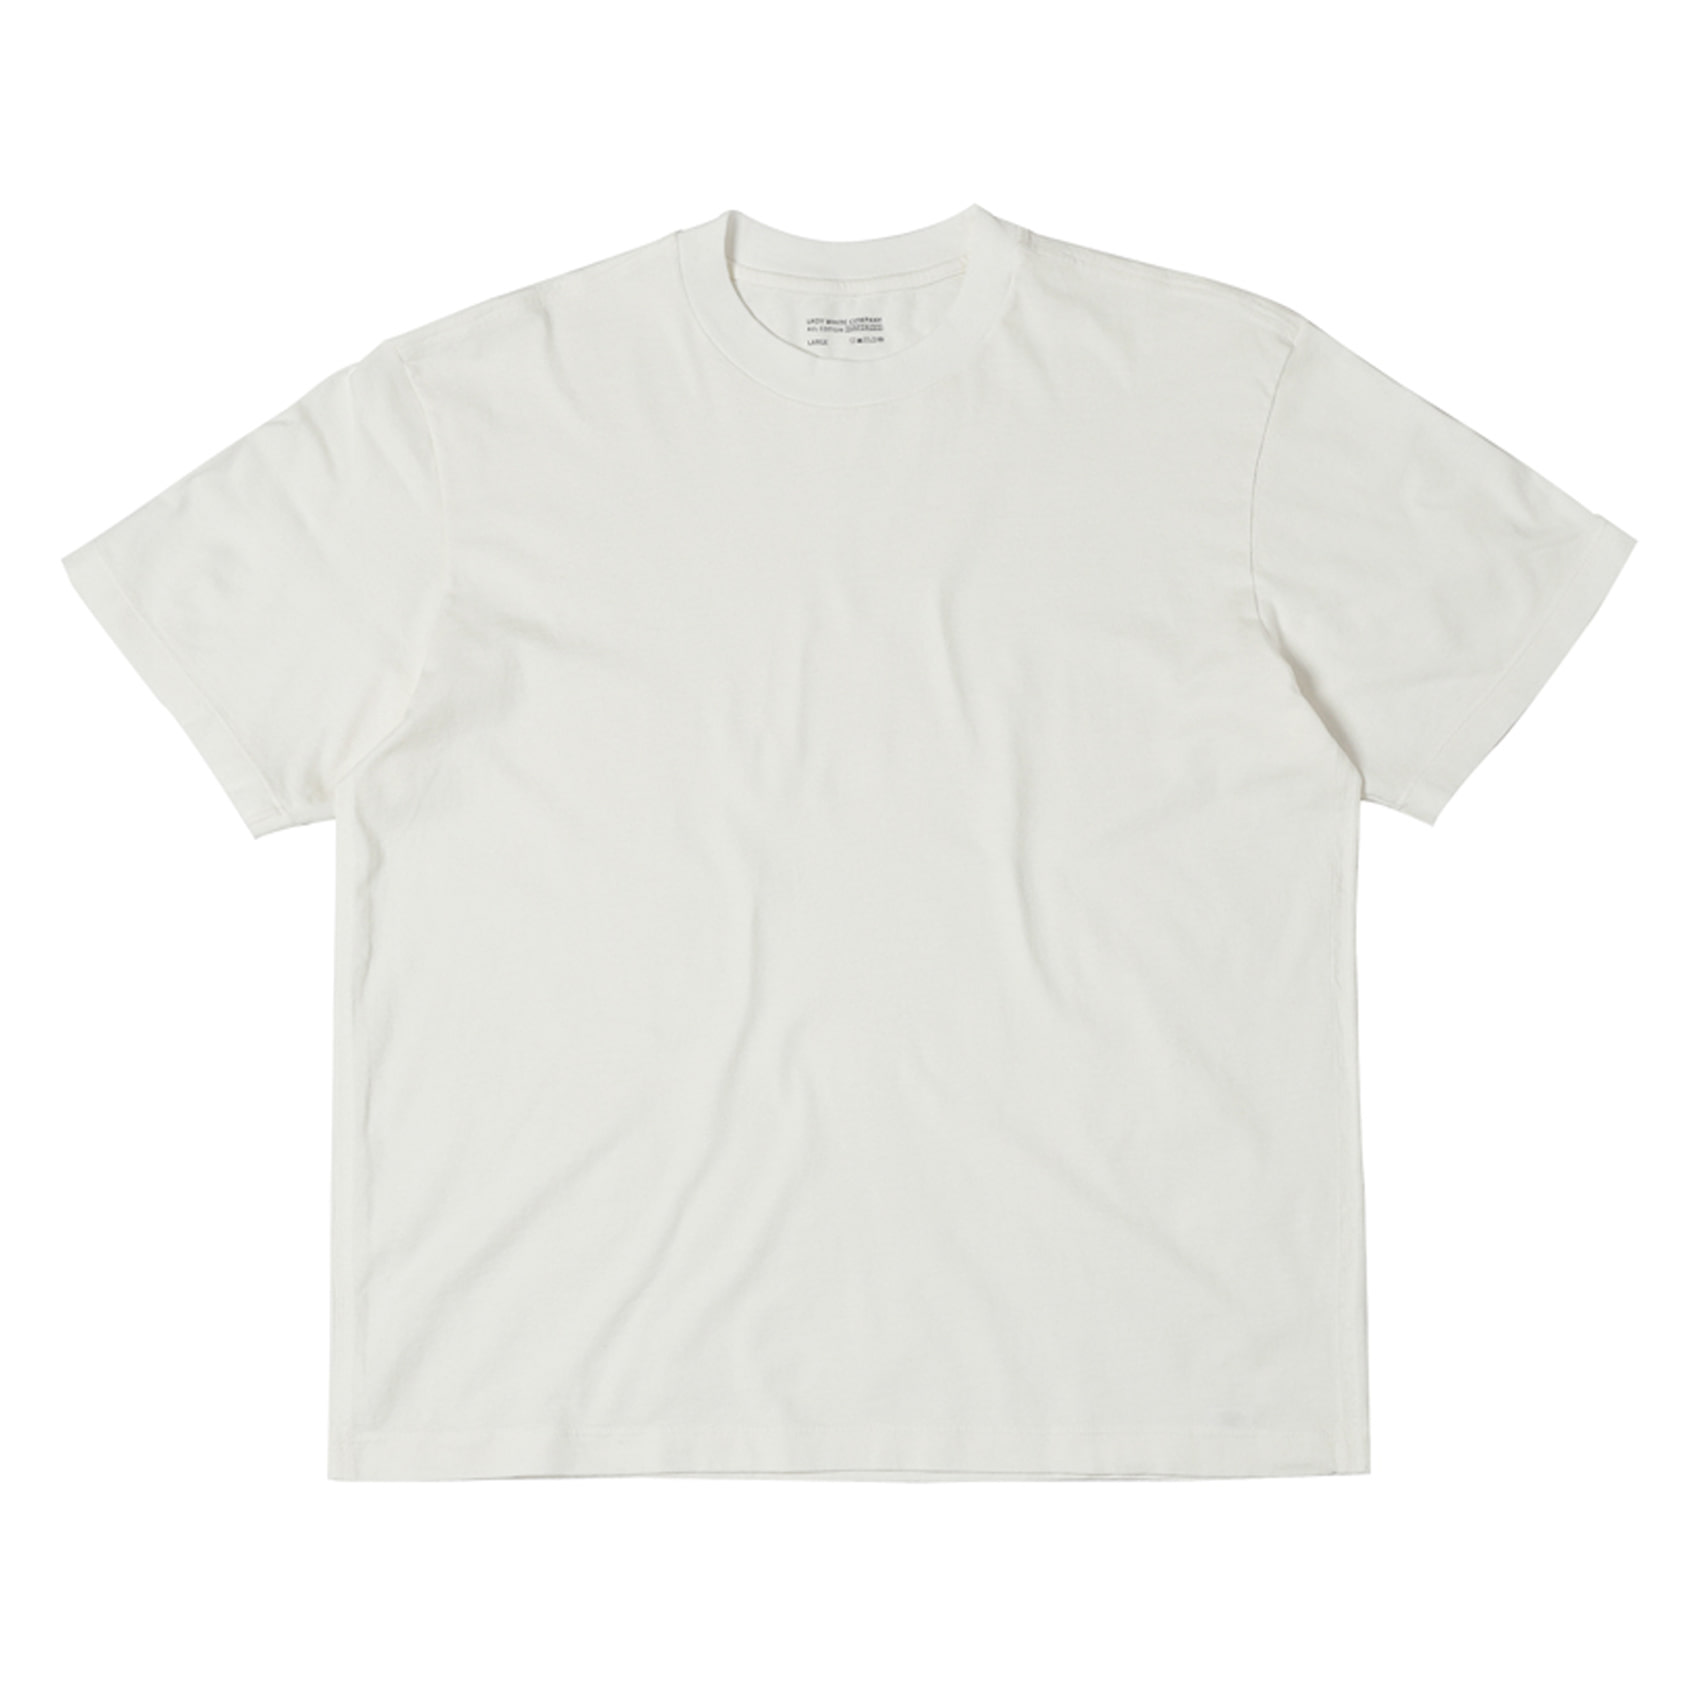 ATHENS T-SHIRT - WHITE